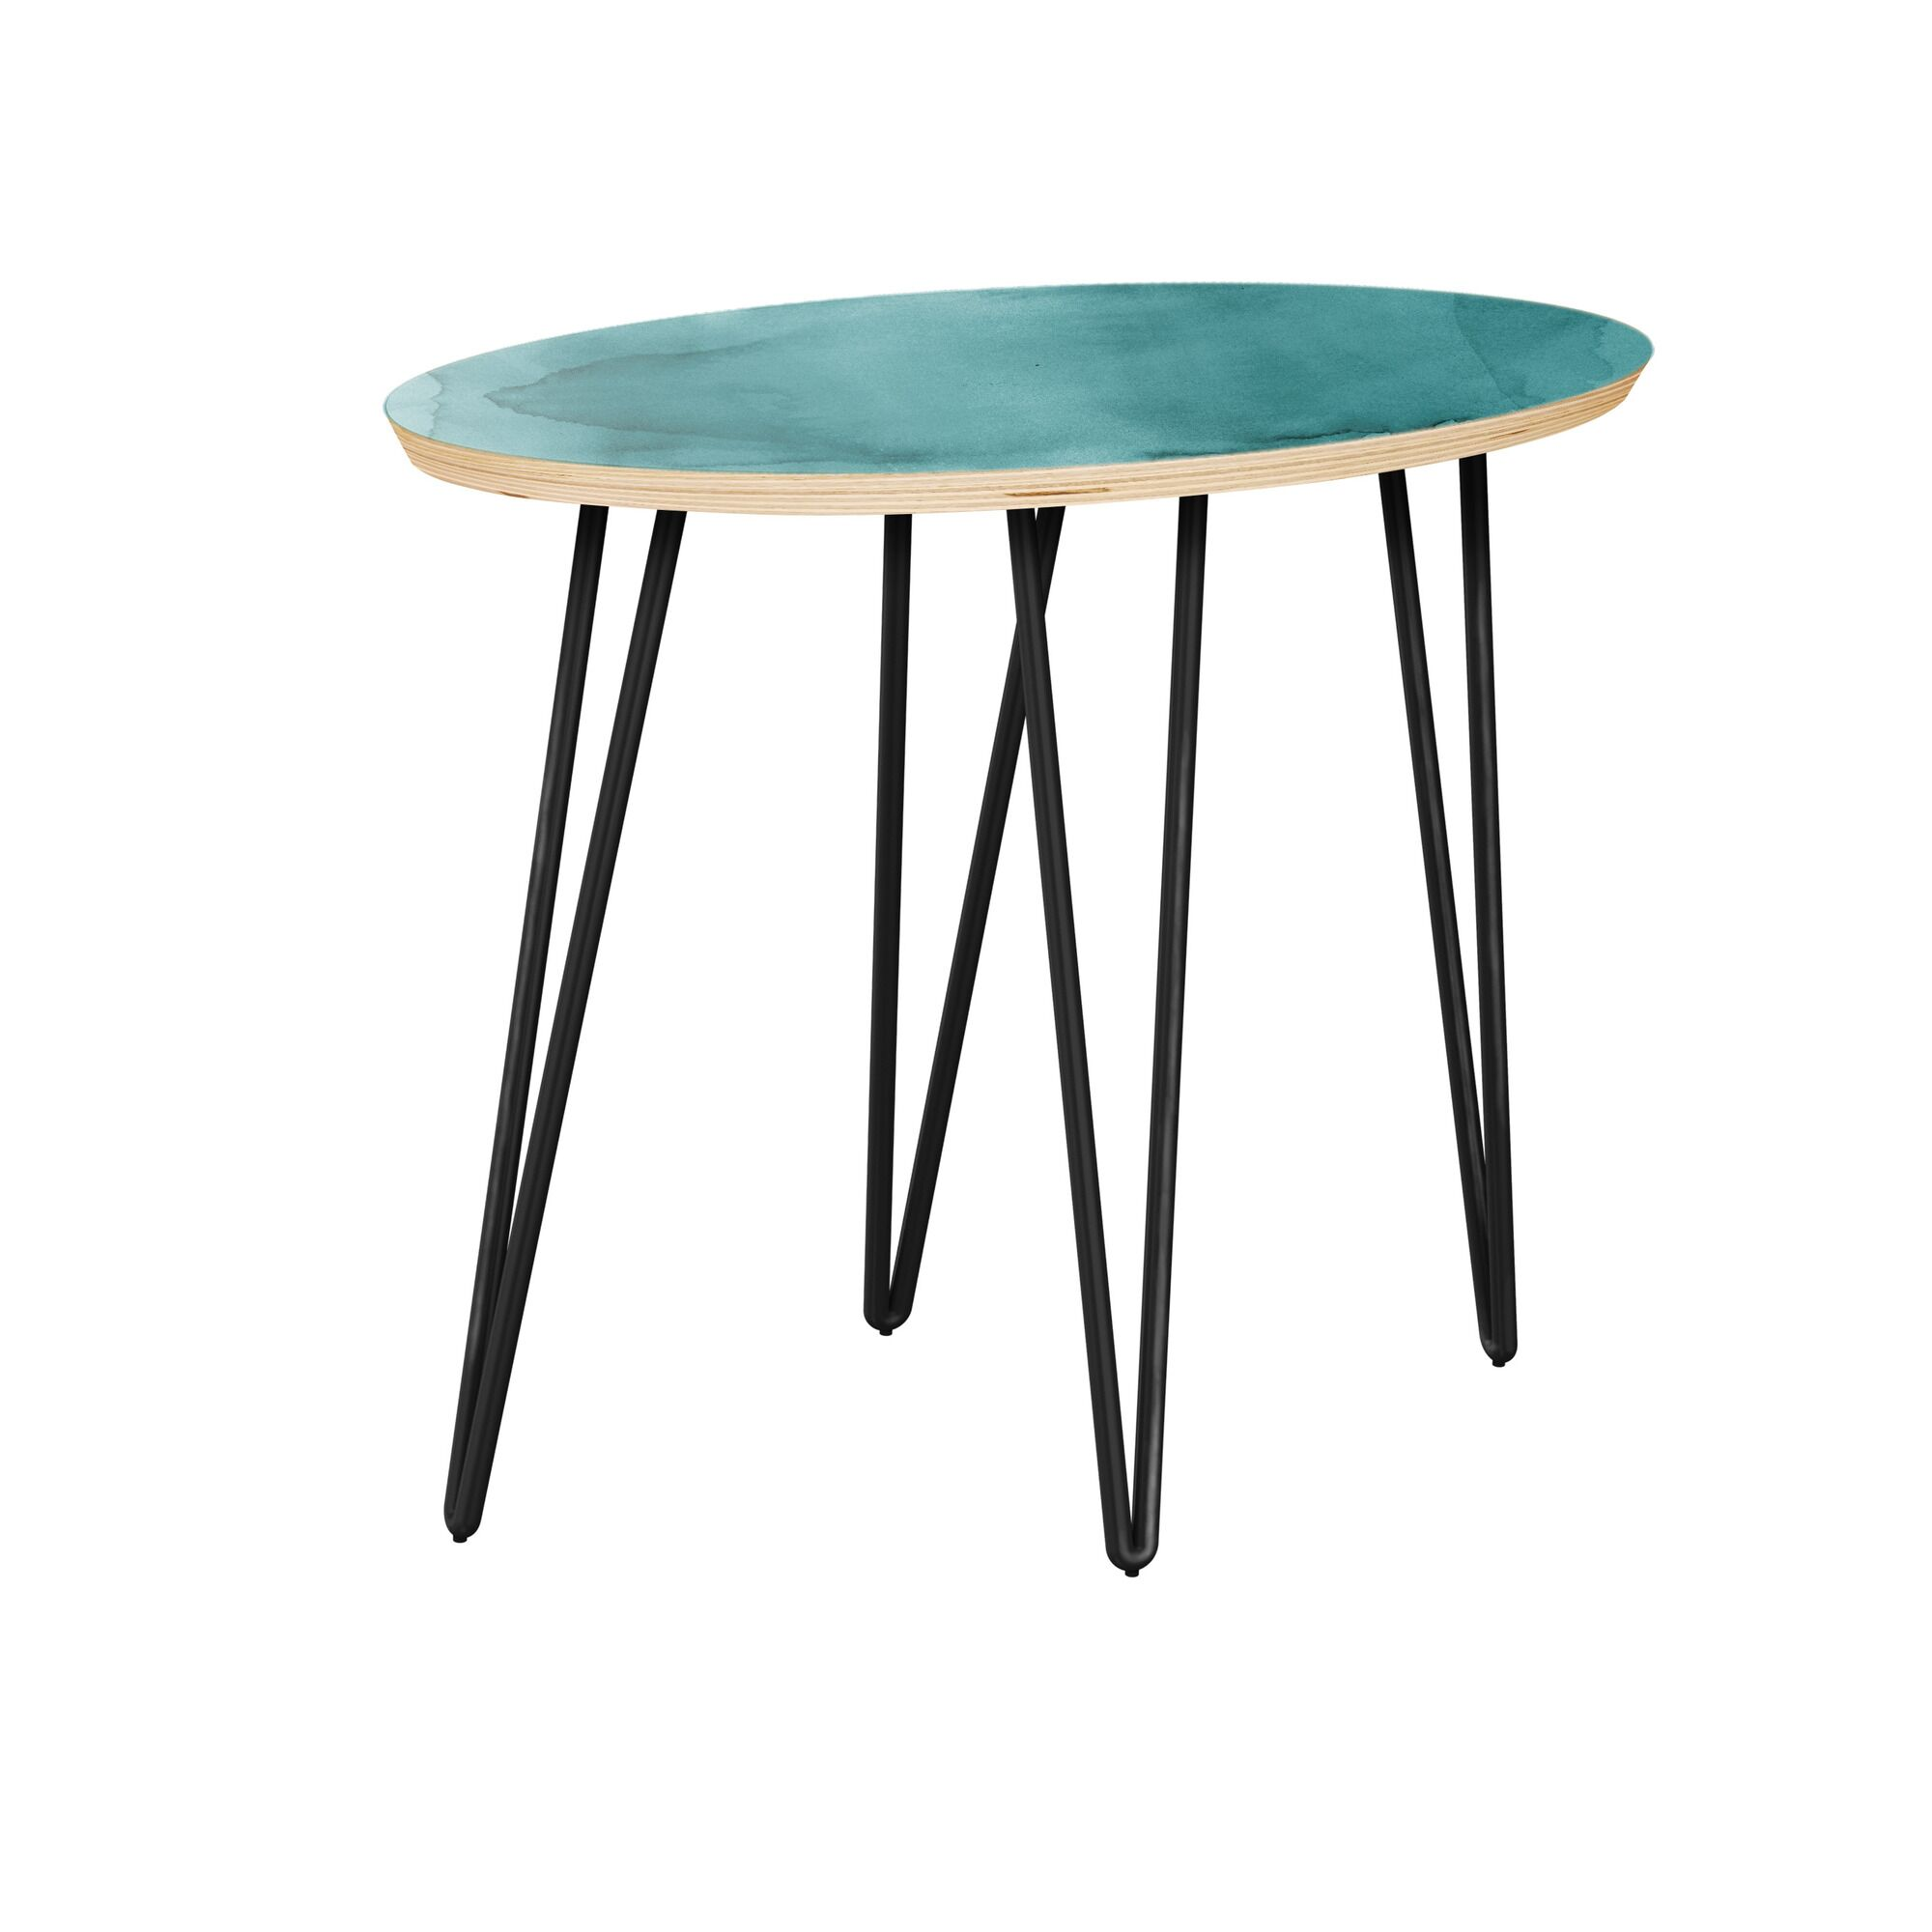 Jarred End Table Table Top Boarder Color: Natural, Table Base Color: Black, Table Top Color: Pink